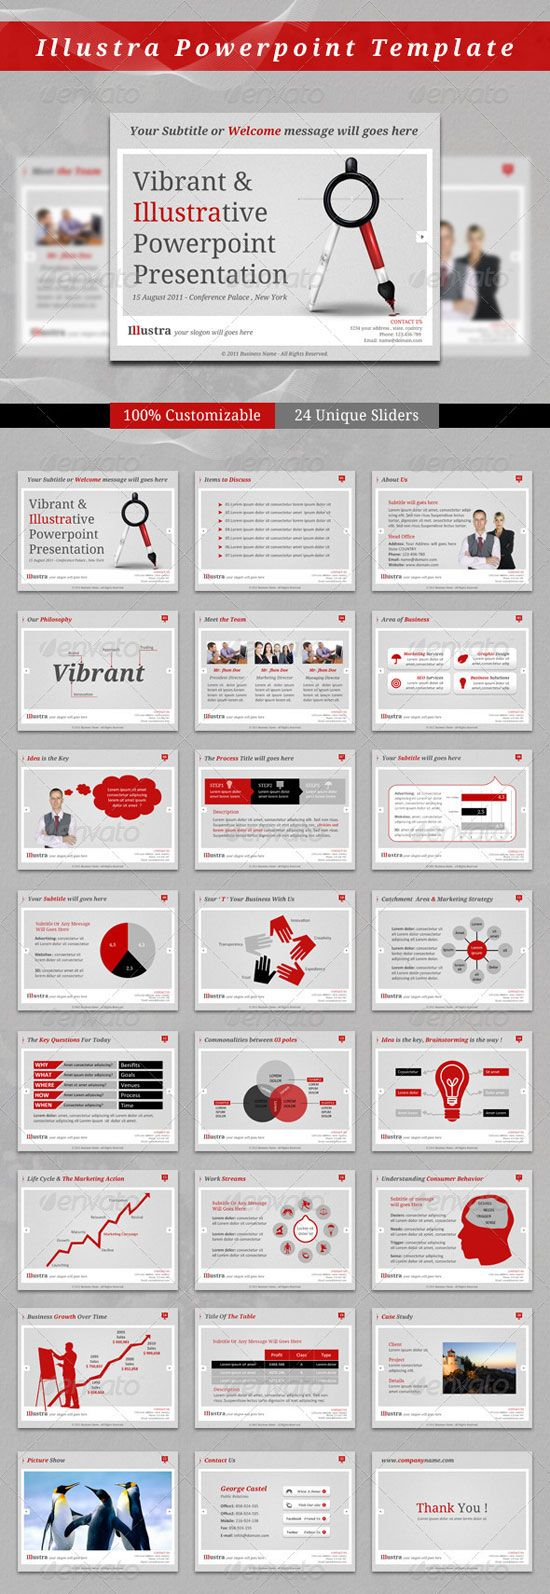 23 best Best Presentation images on Pinterest | Charts, Page layout ...